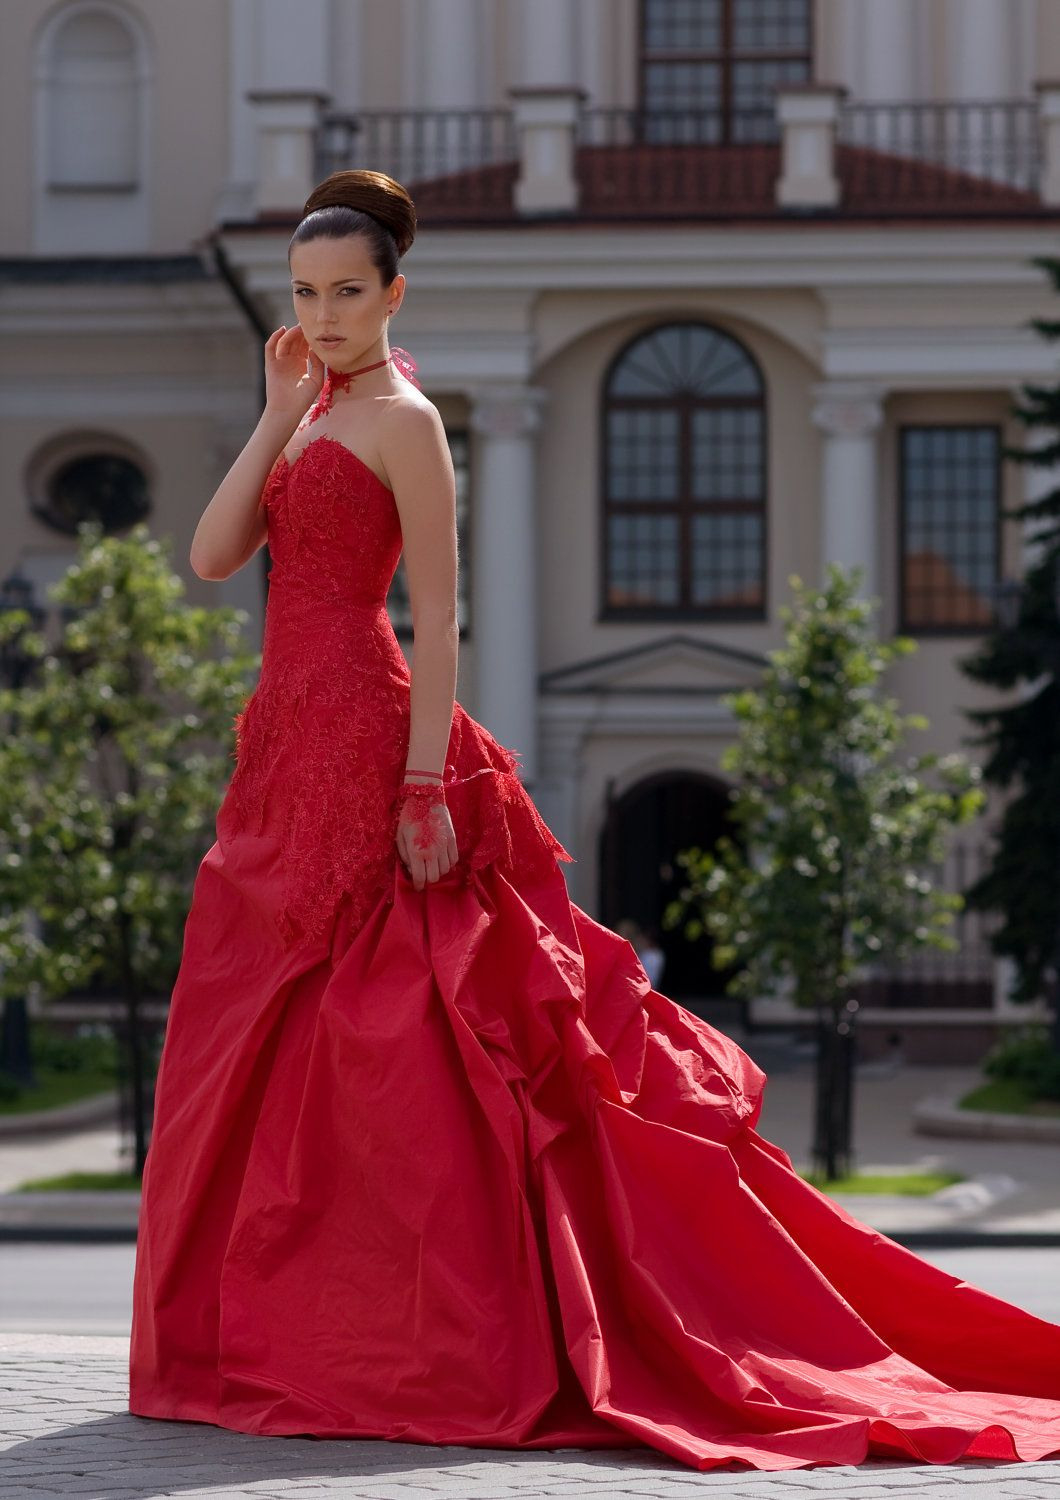 Fascinate Red Wedding Dress With Lace Andedelweissbride